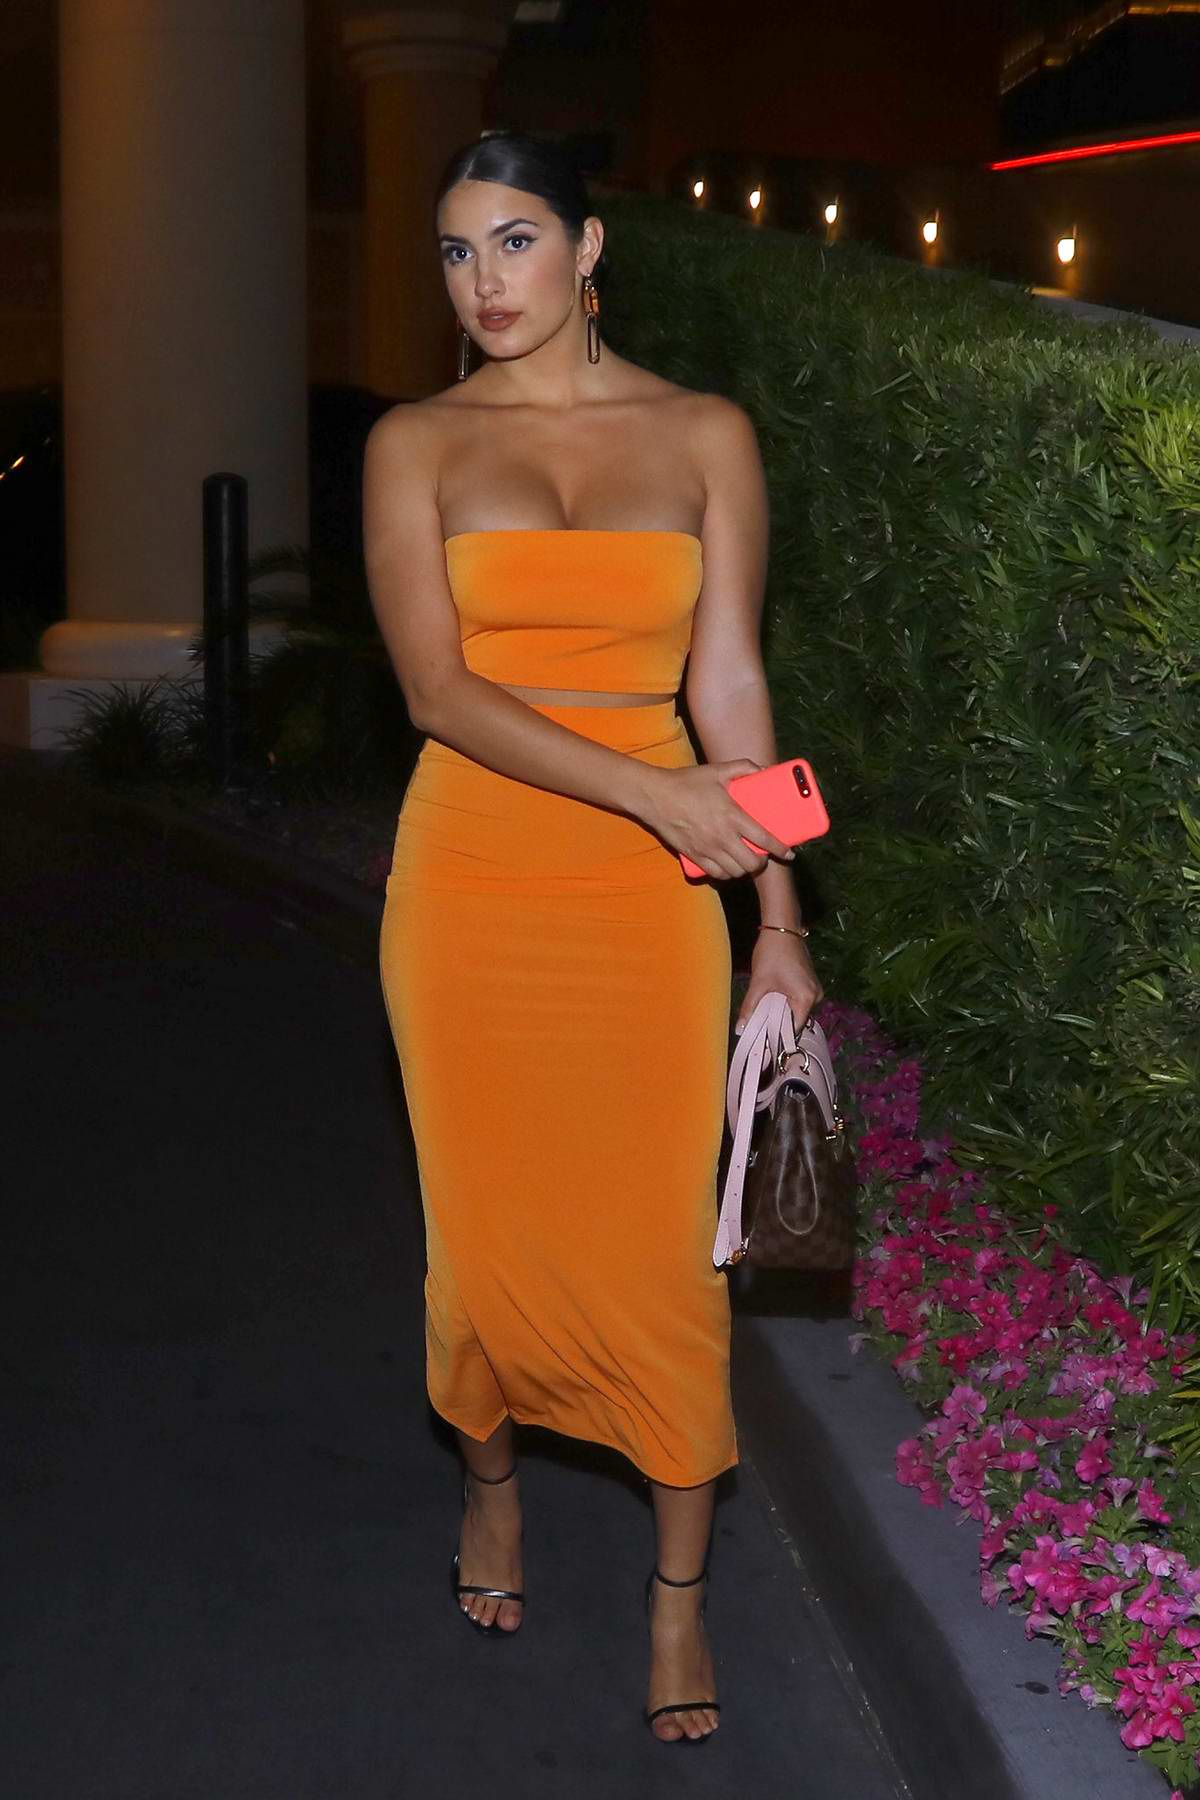 Tao Wickrath looks glamorous in orange as she heads to the Lady Gaga show in Las Vegas, Nevada